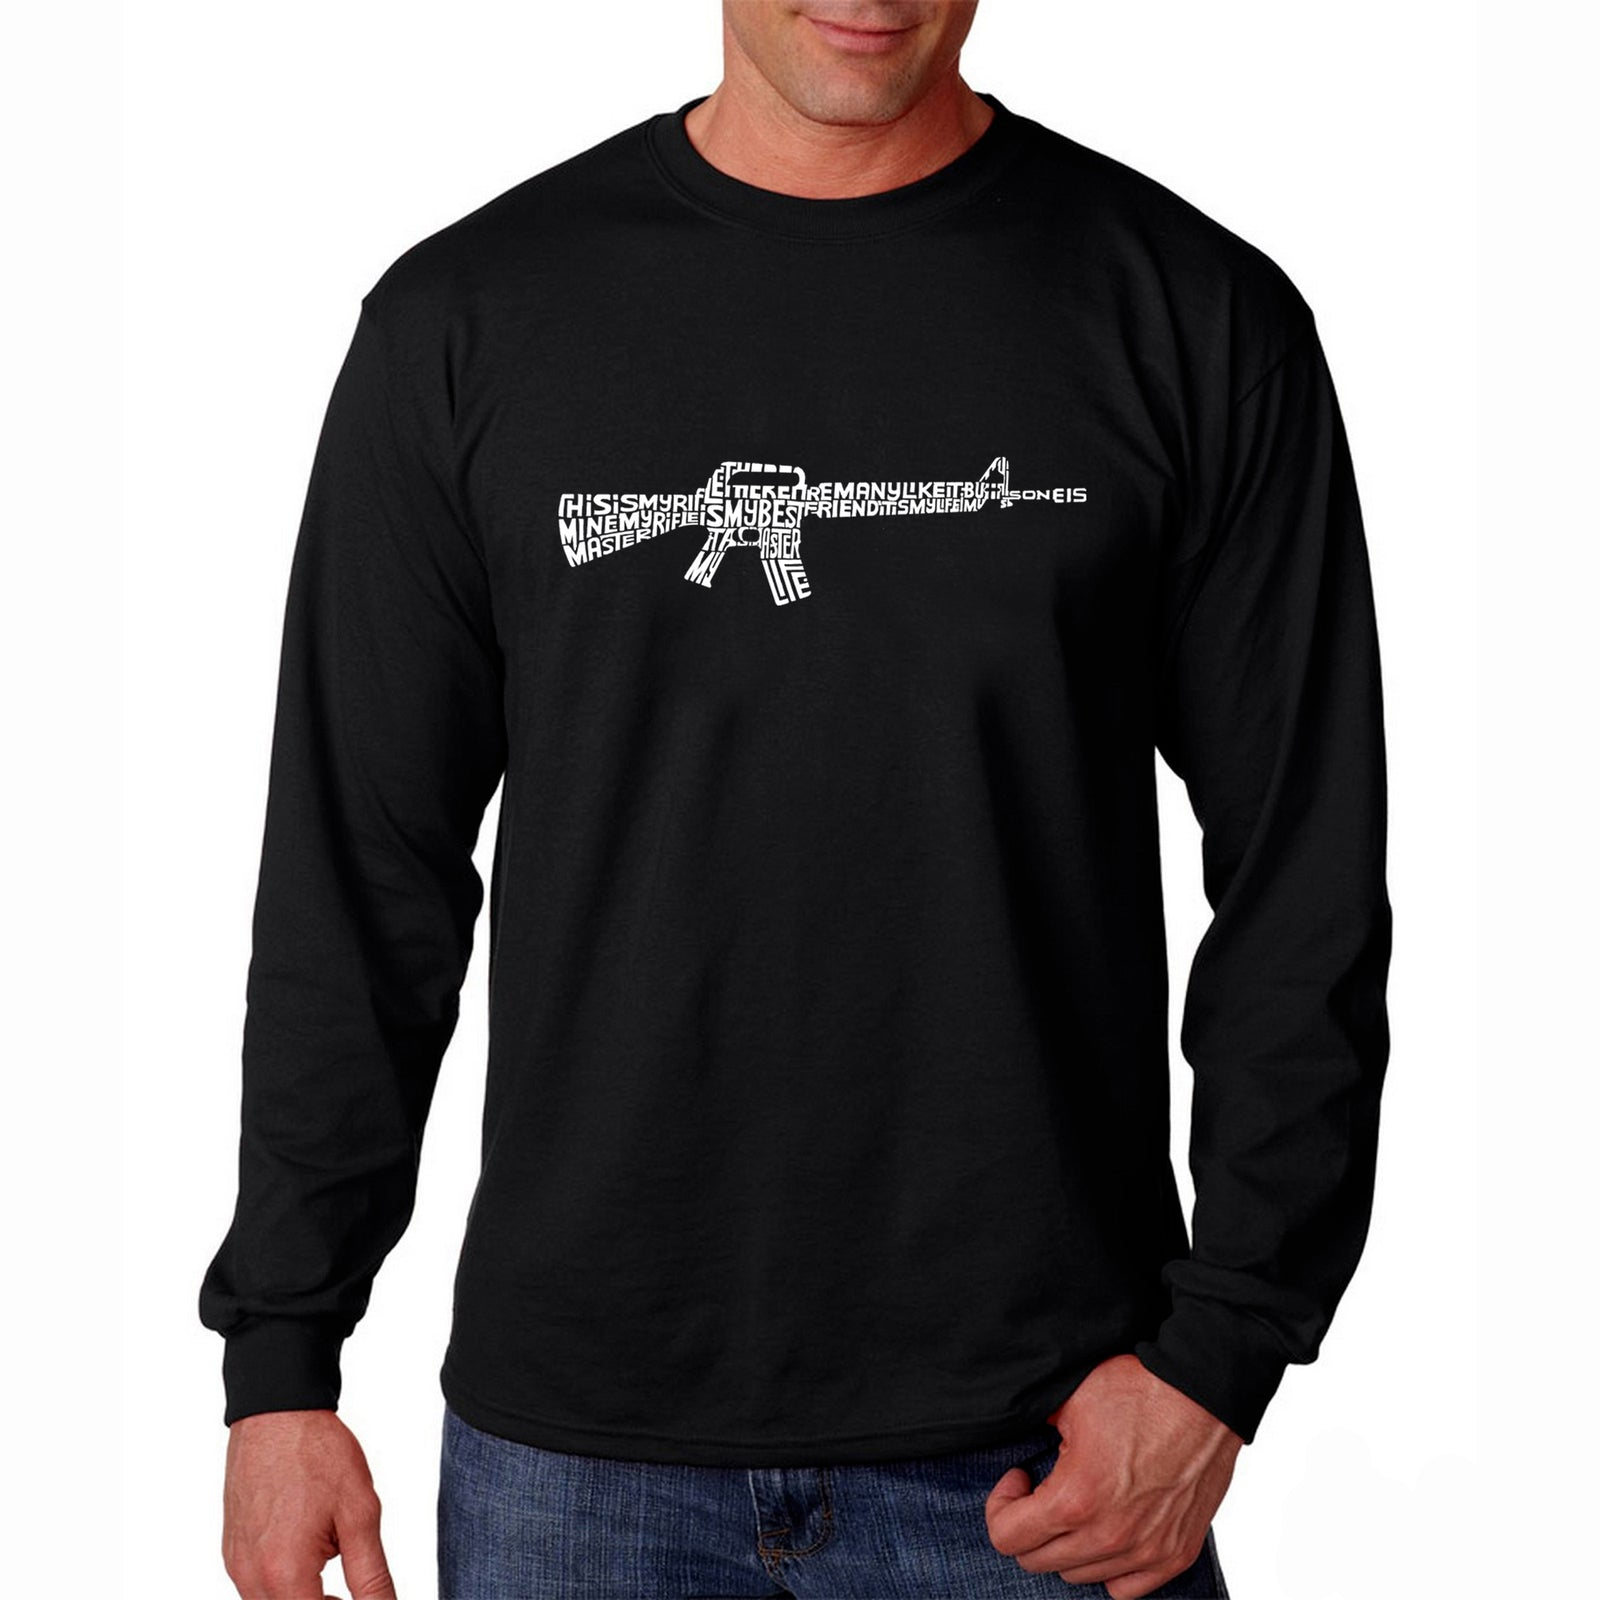 Men's Long Sleeve T-shirt - RIFLEMANS CREED